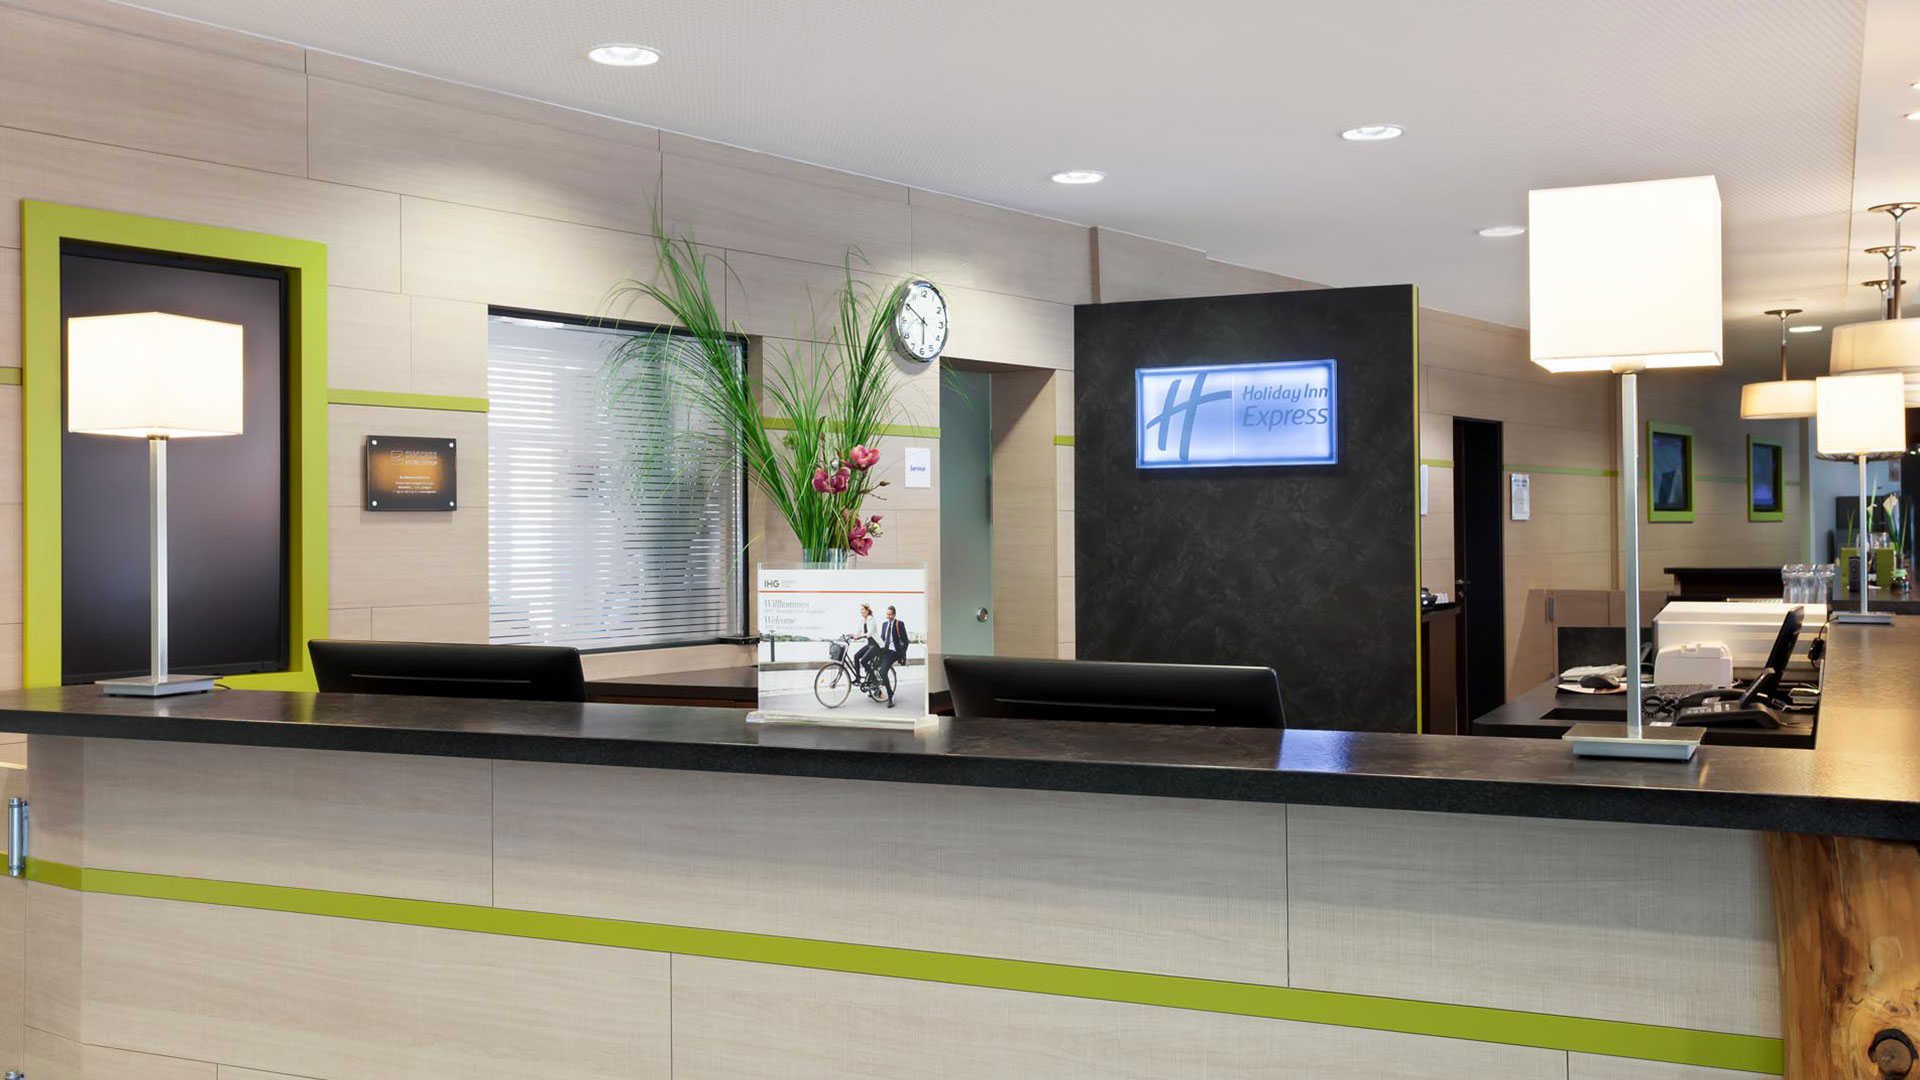 Photo of the reception - Holiday Inn Express Augsburg